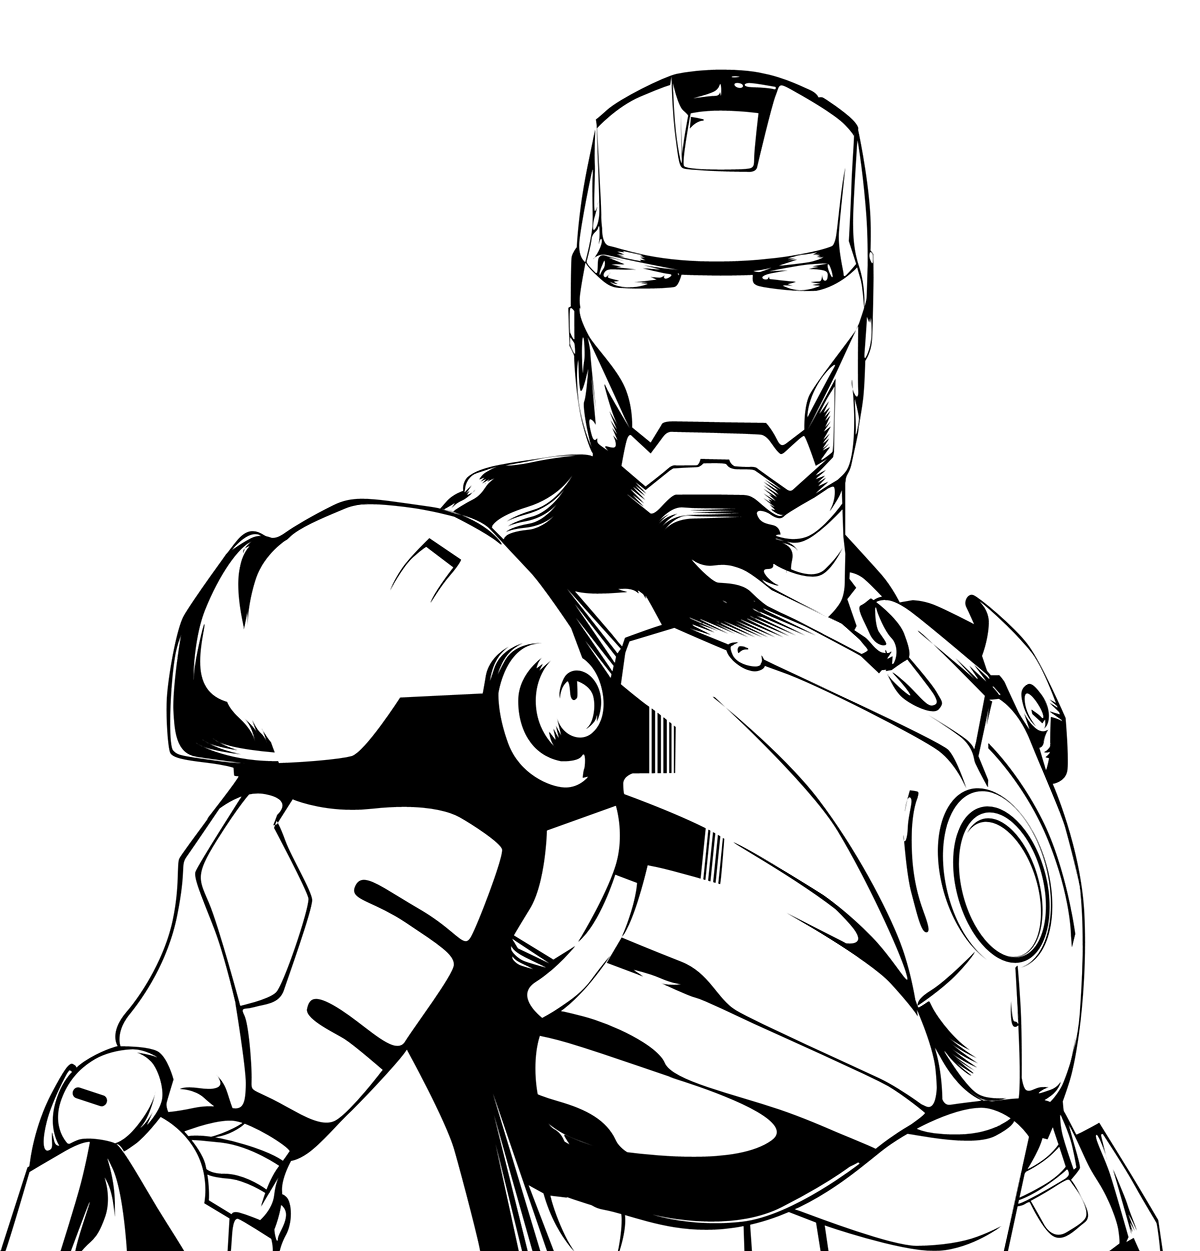 clipart Iron drawing line art. Man black and white clipart